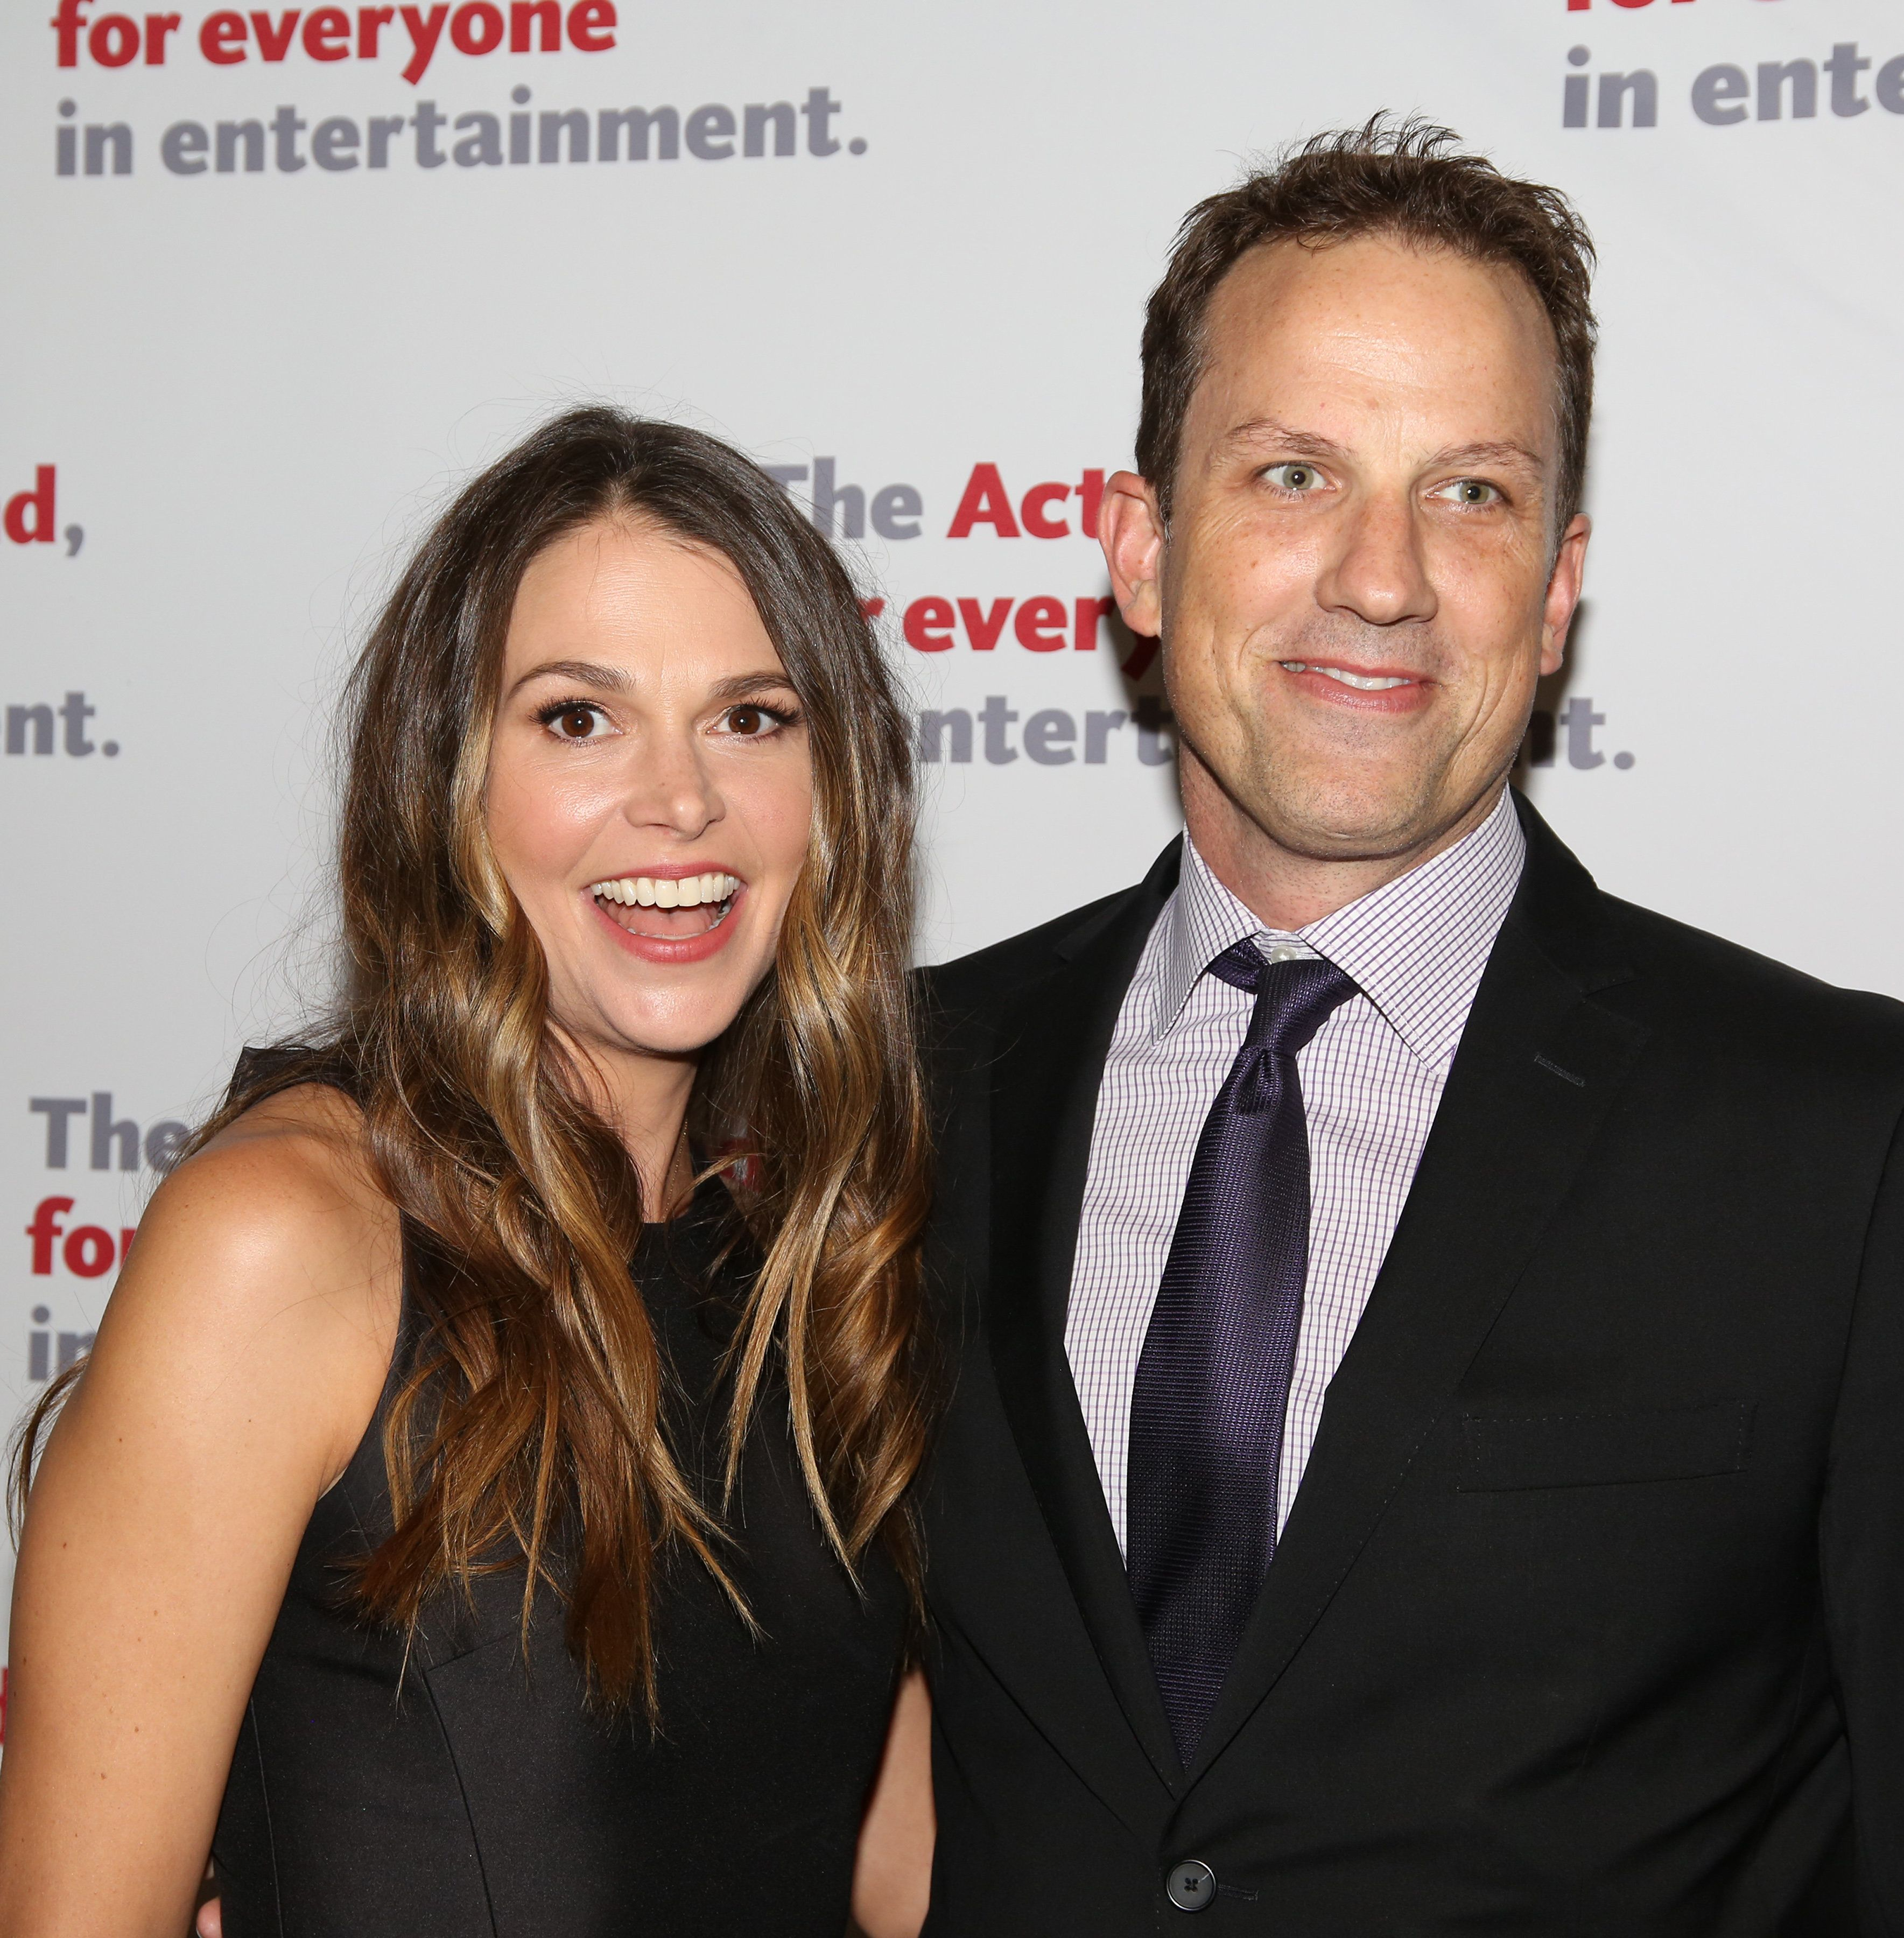 Tony award-winning actress and singer Sutton Foster and screenwriter Ted Griffin announced they adopted a baby girl. They've